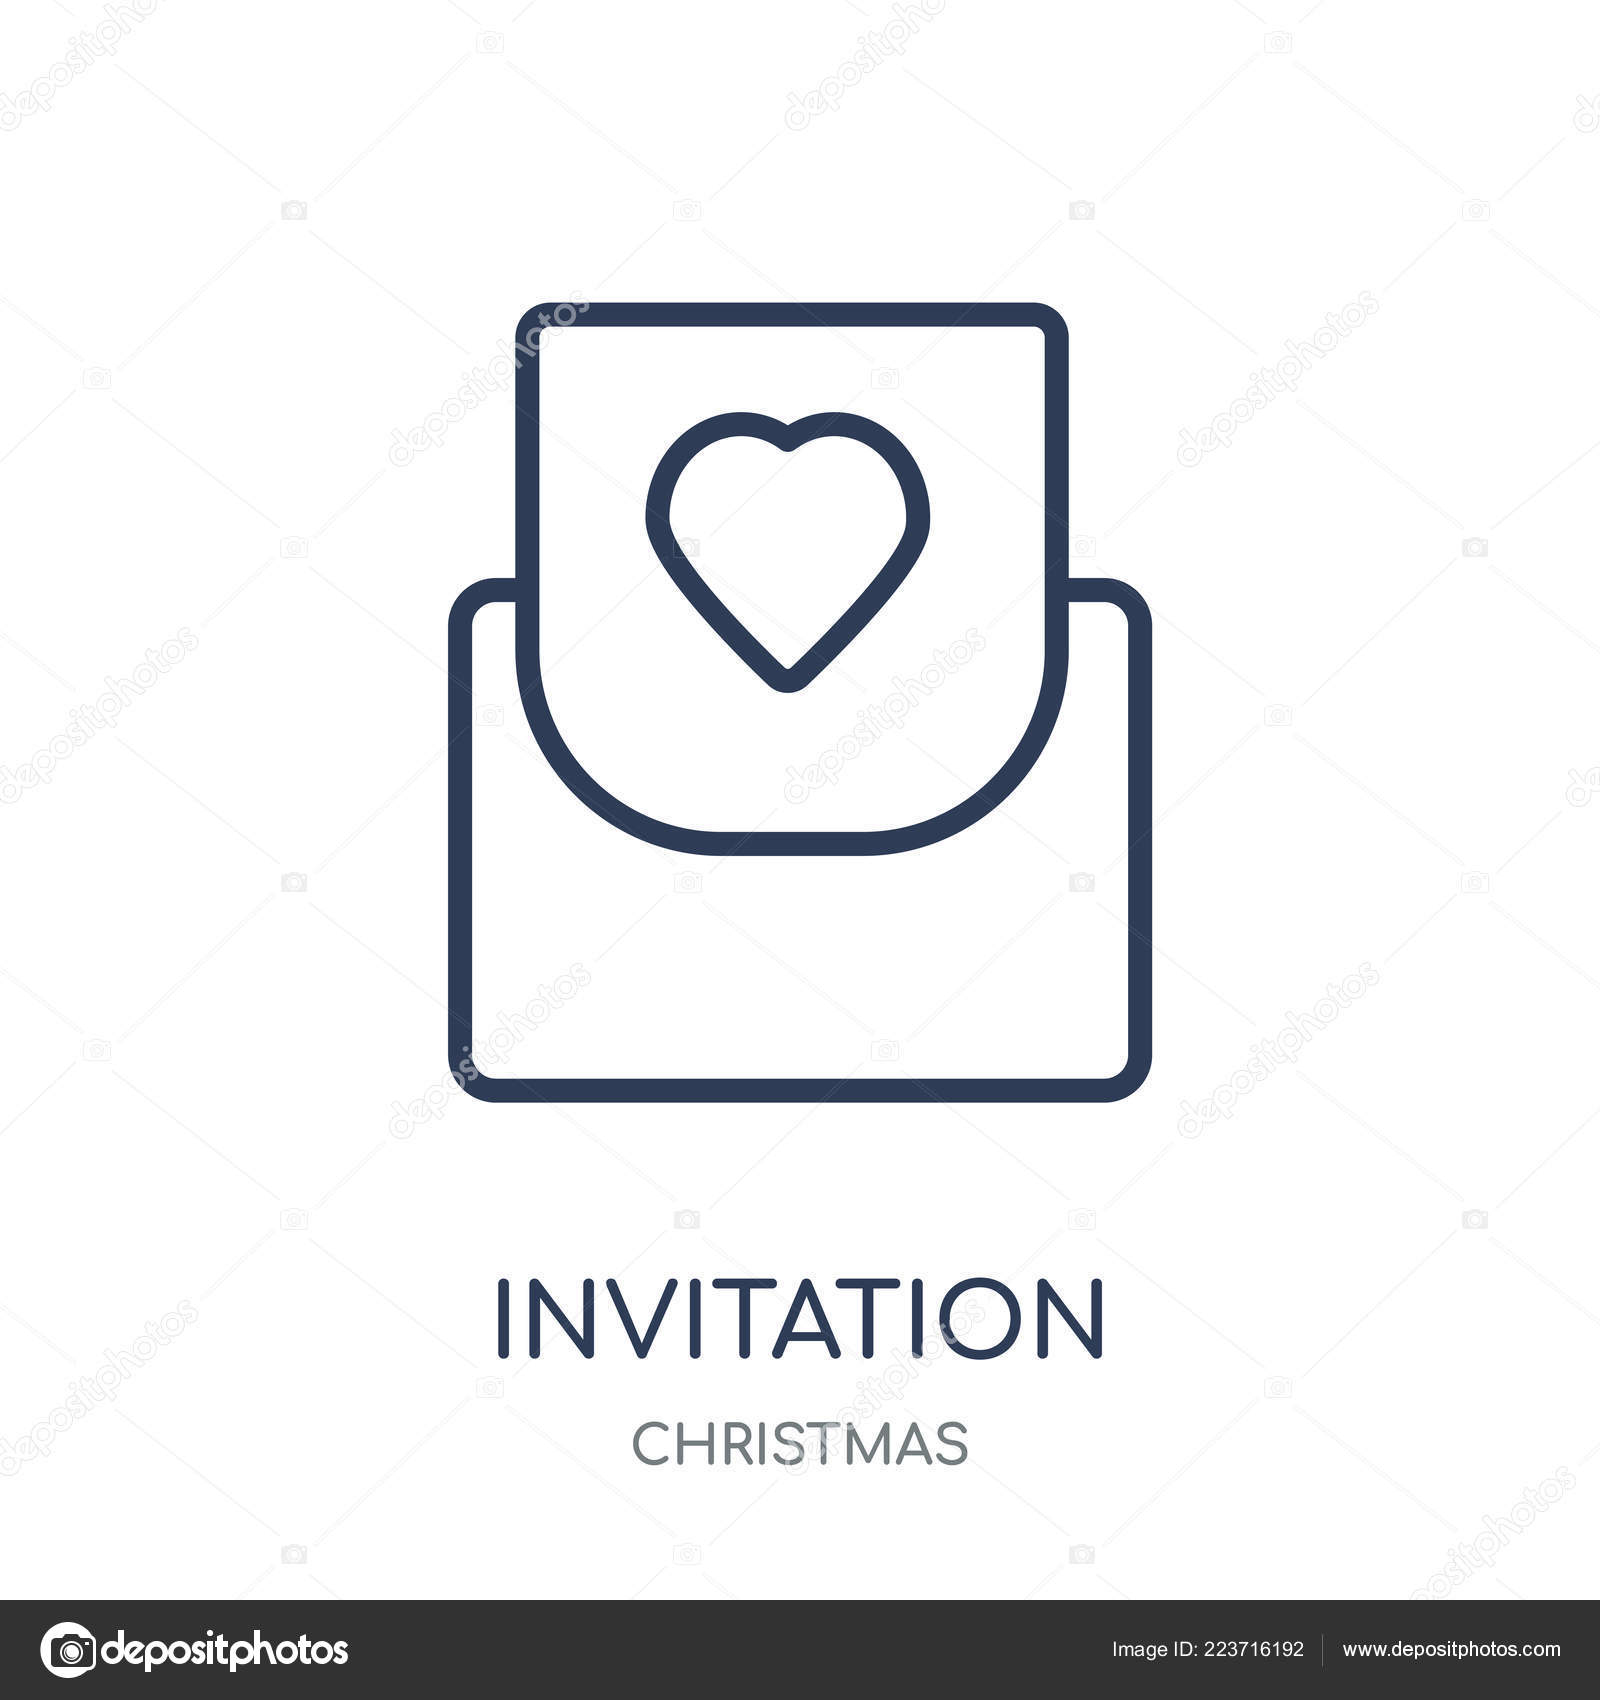 Invitation Icon Invitation Linear Symbol Design Christmas Collection